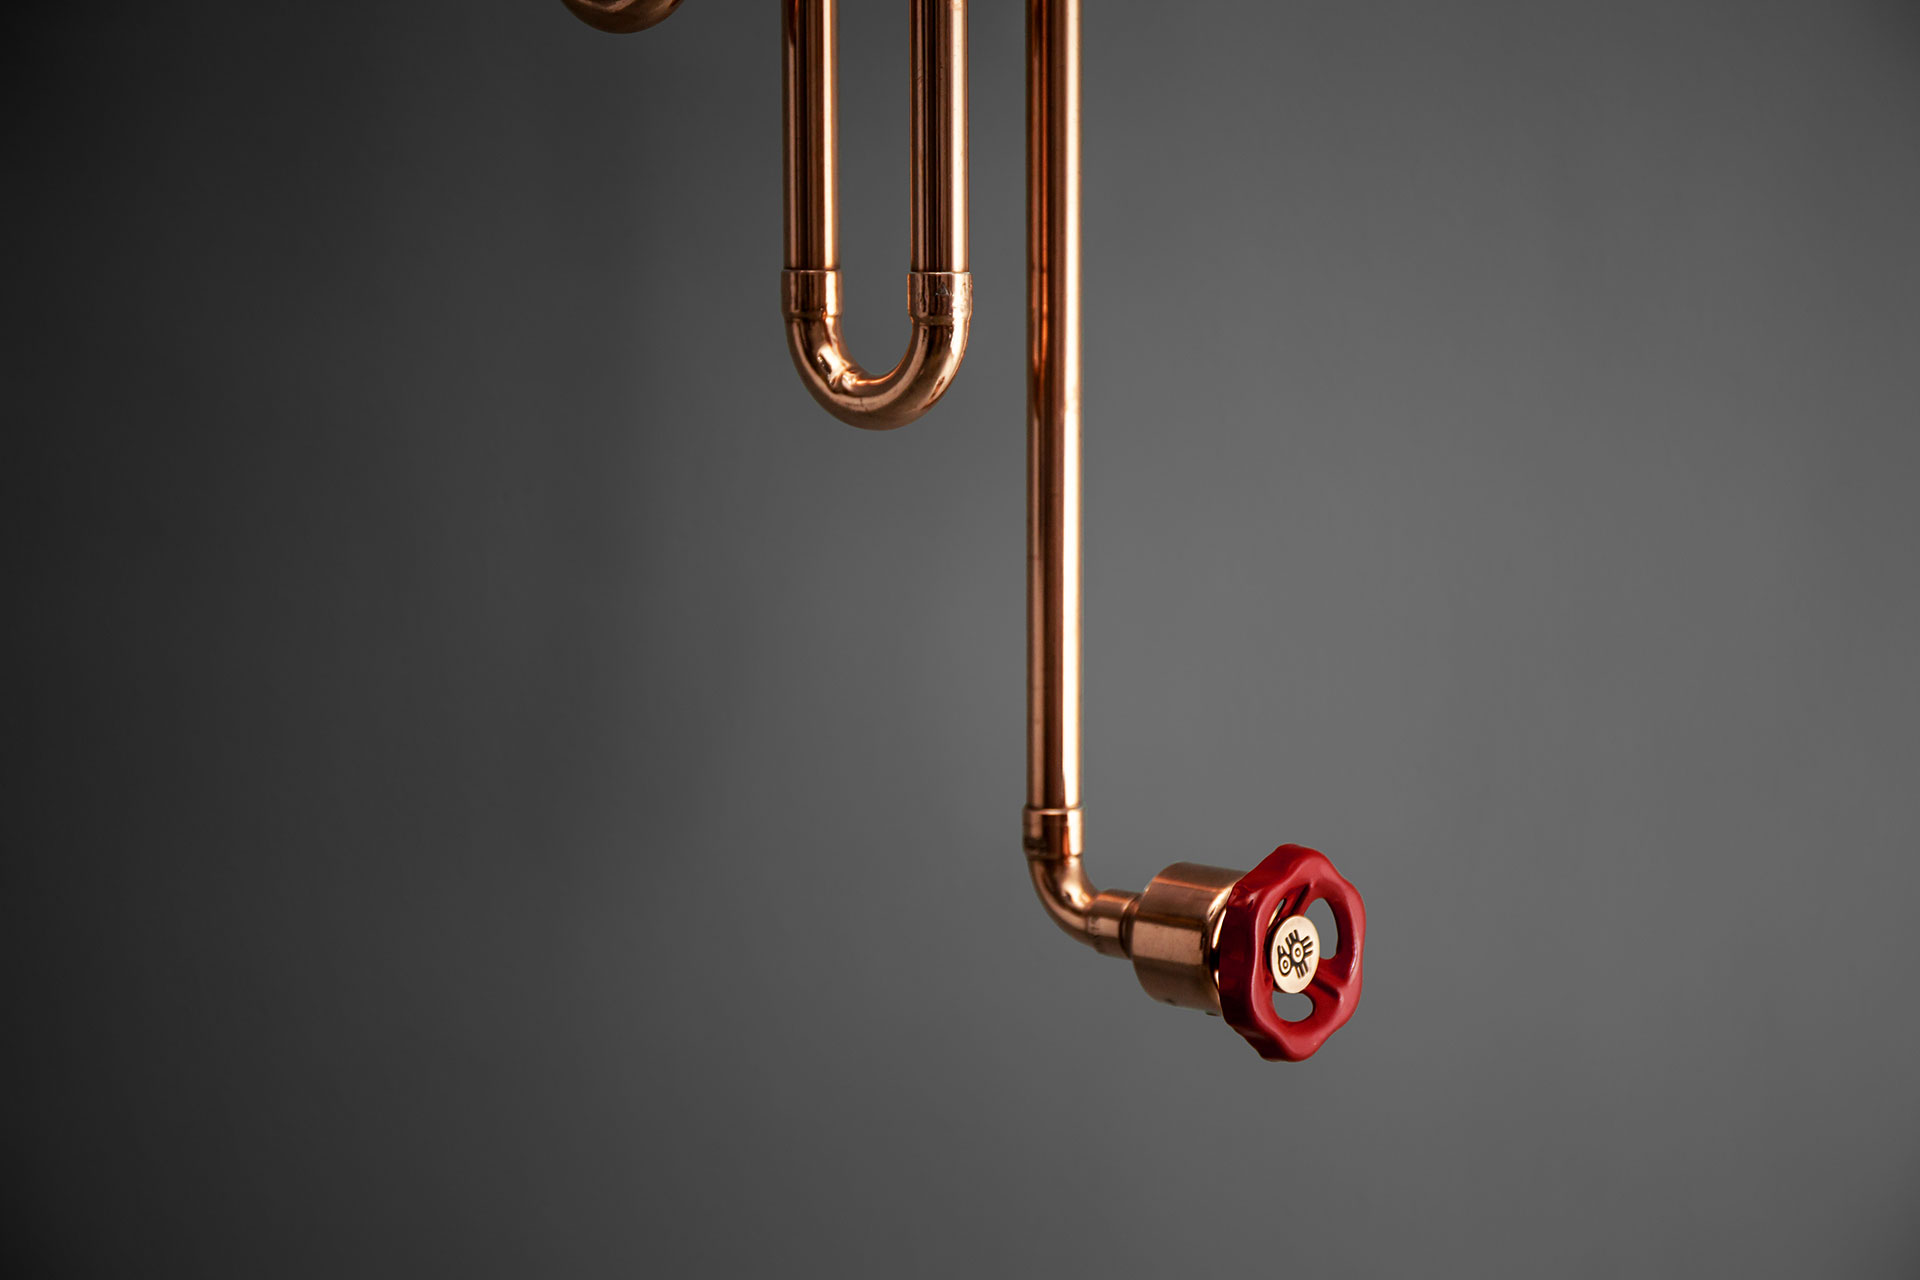 Industrial design copper wall lamp with dimmer